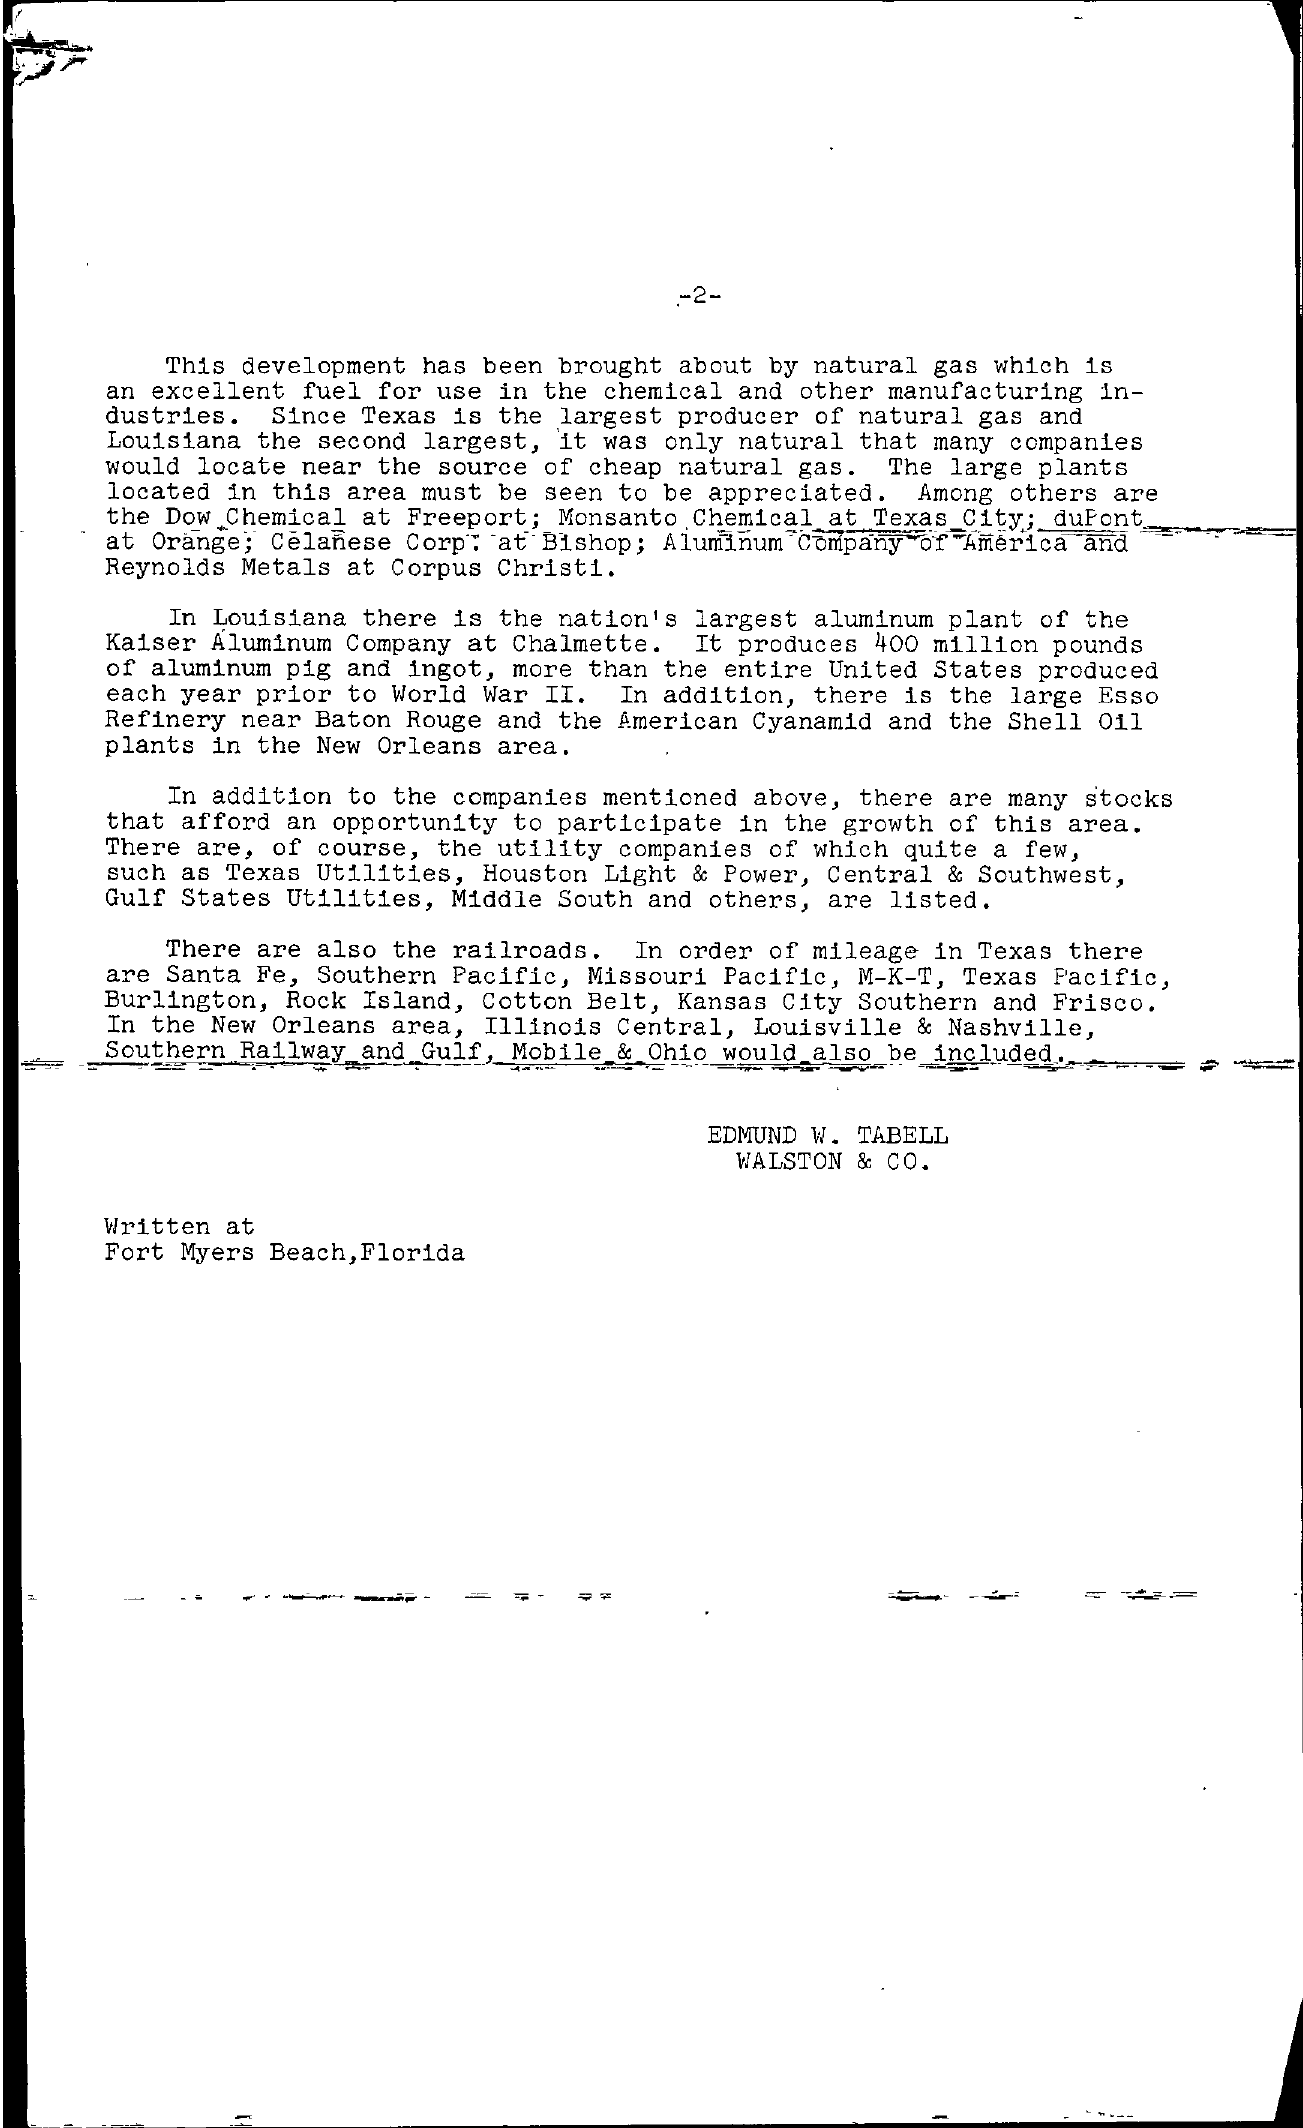 Tabell's Market Letter - March 18, 1955 page 2